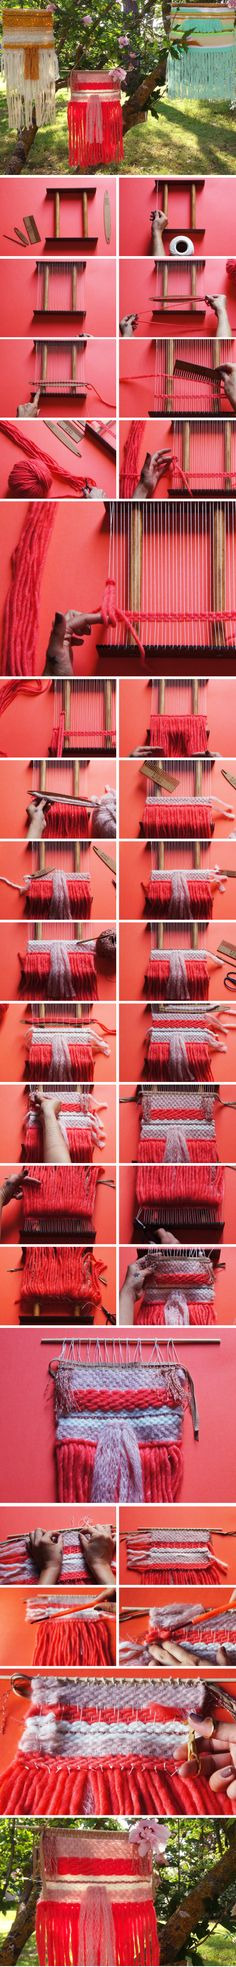 DIY WEAVING tutoriel for beginners stepper and technical weaving kit and accesso… - Weaving ideas Weaving Textiles, Weaving Art, Tapestry Weaving, Loom Weaving, Hand Weaving, Classroom Art Projects, Weaving Projects, Weaving Techniques, Arm Knitting